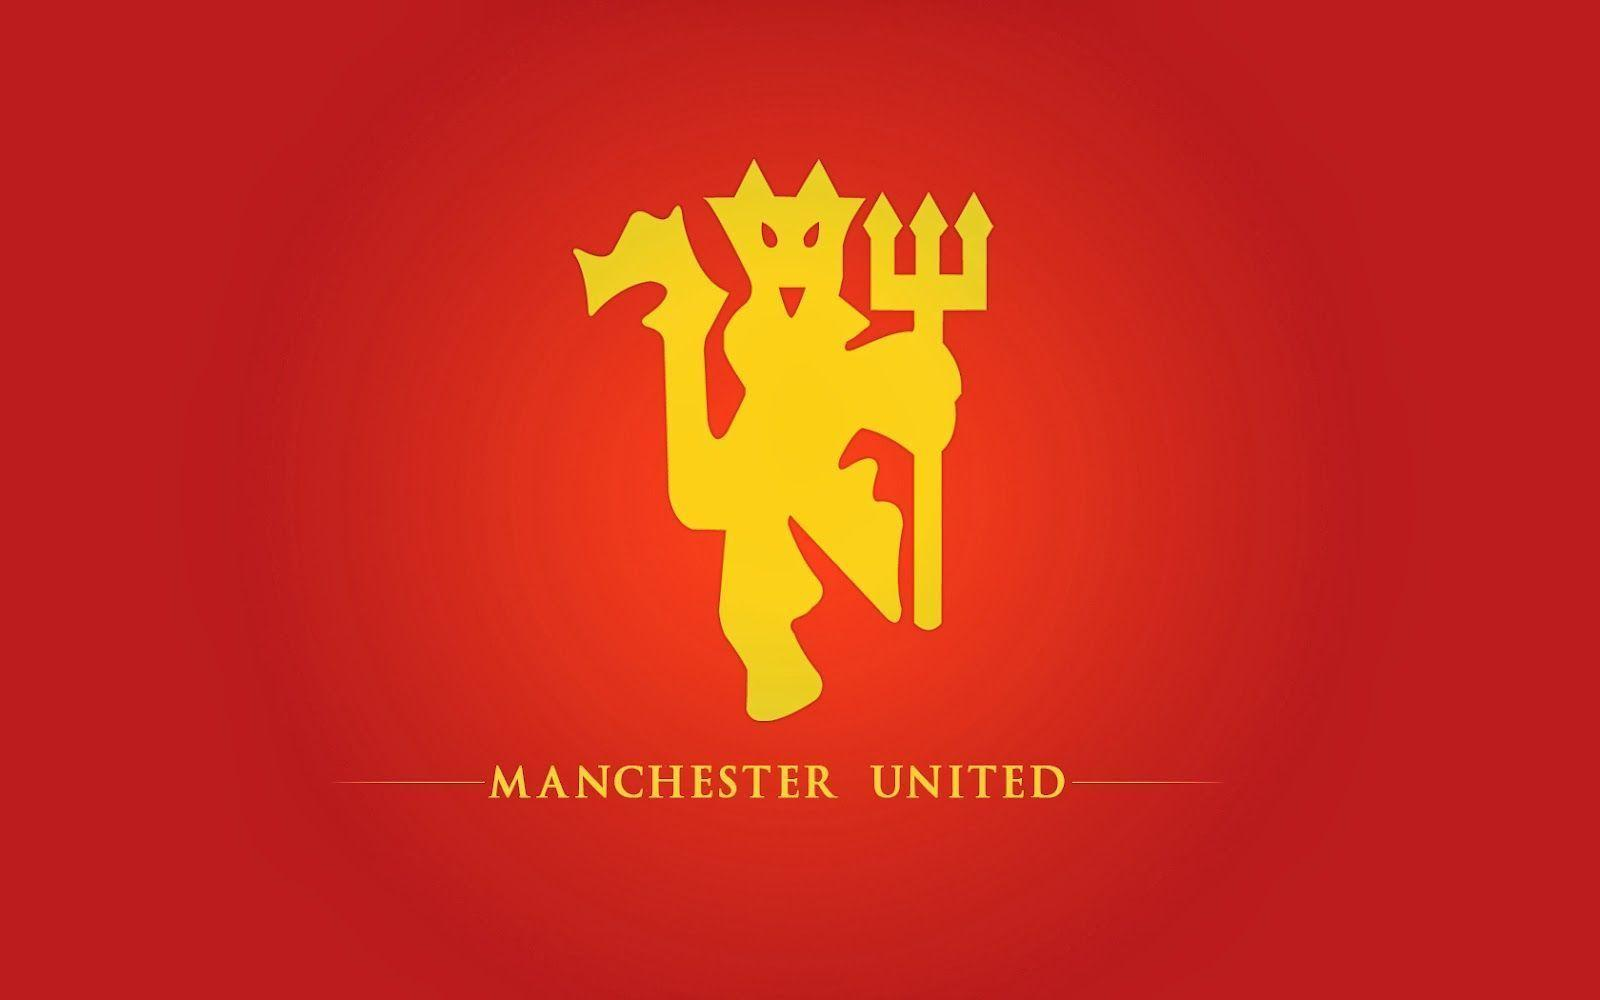 Manchester United Logo Wallpapers HD 2015 1600x1000